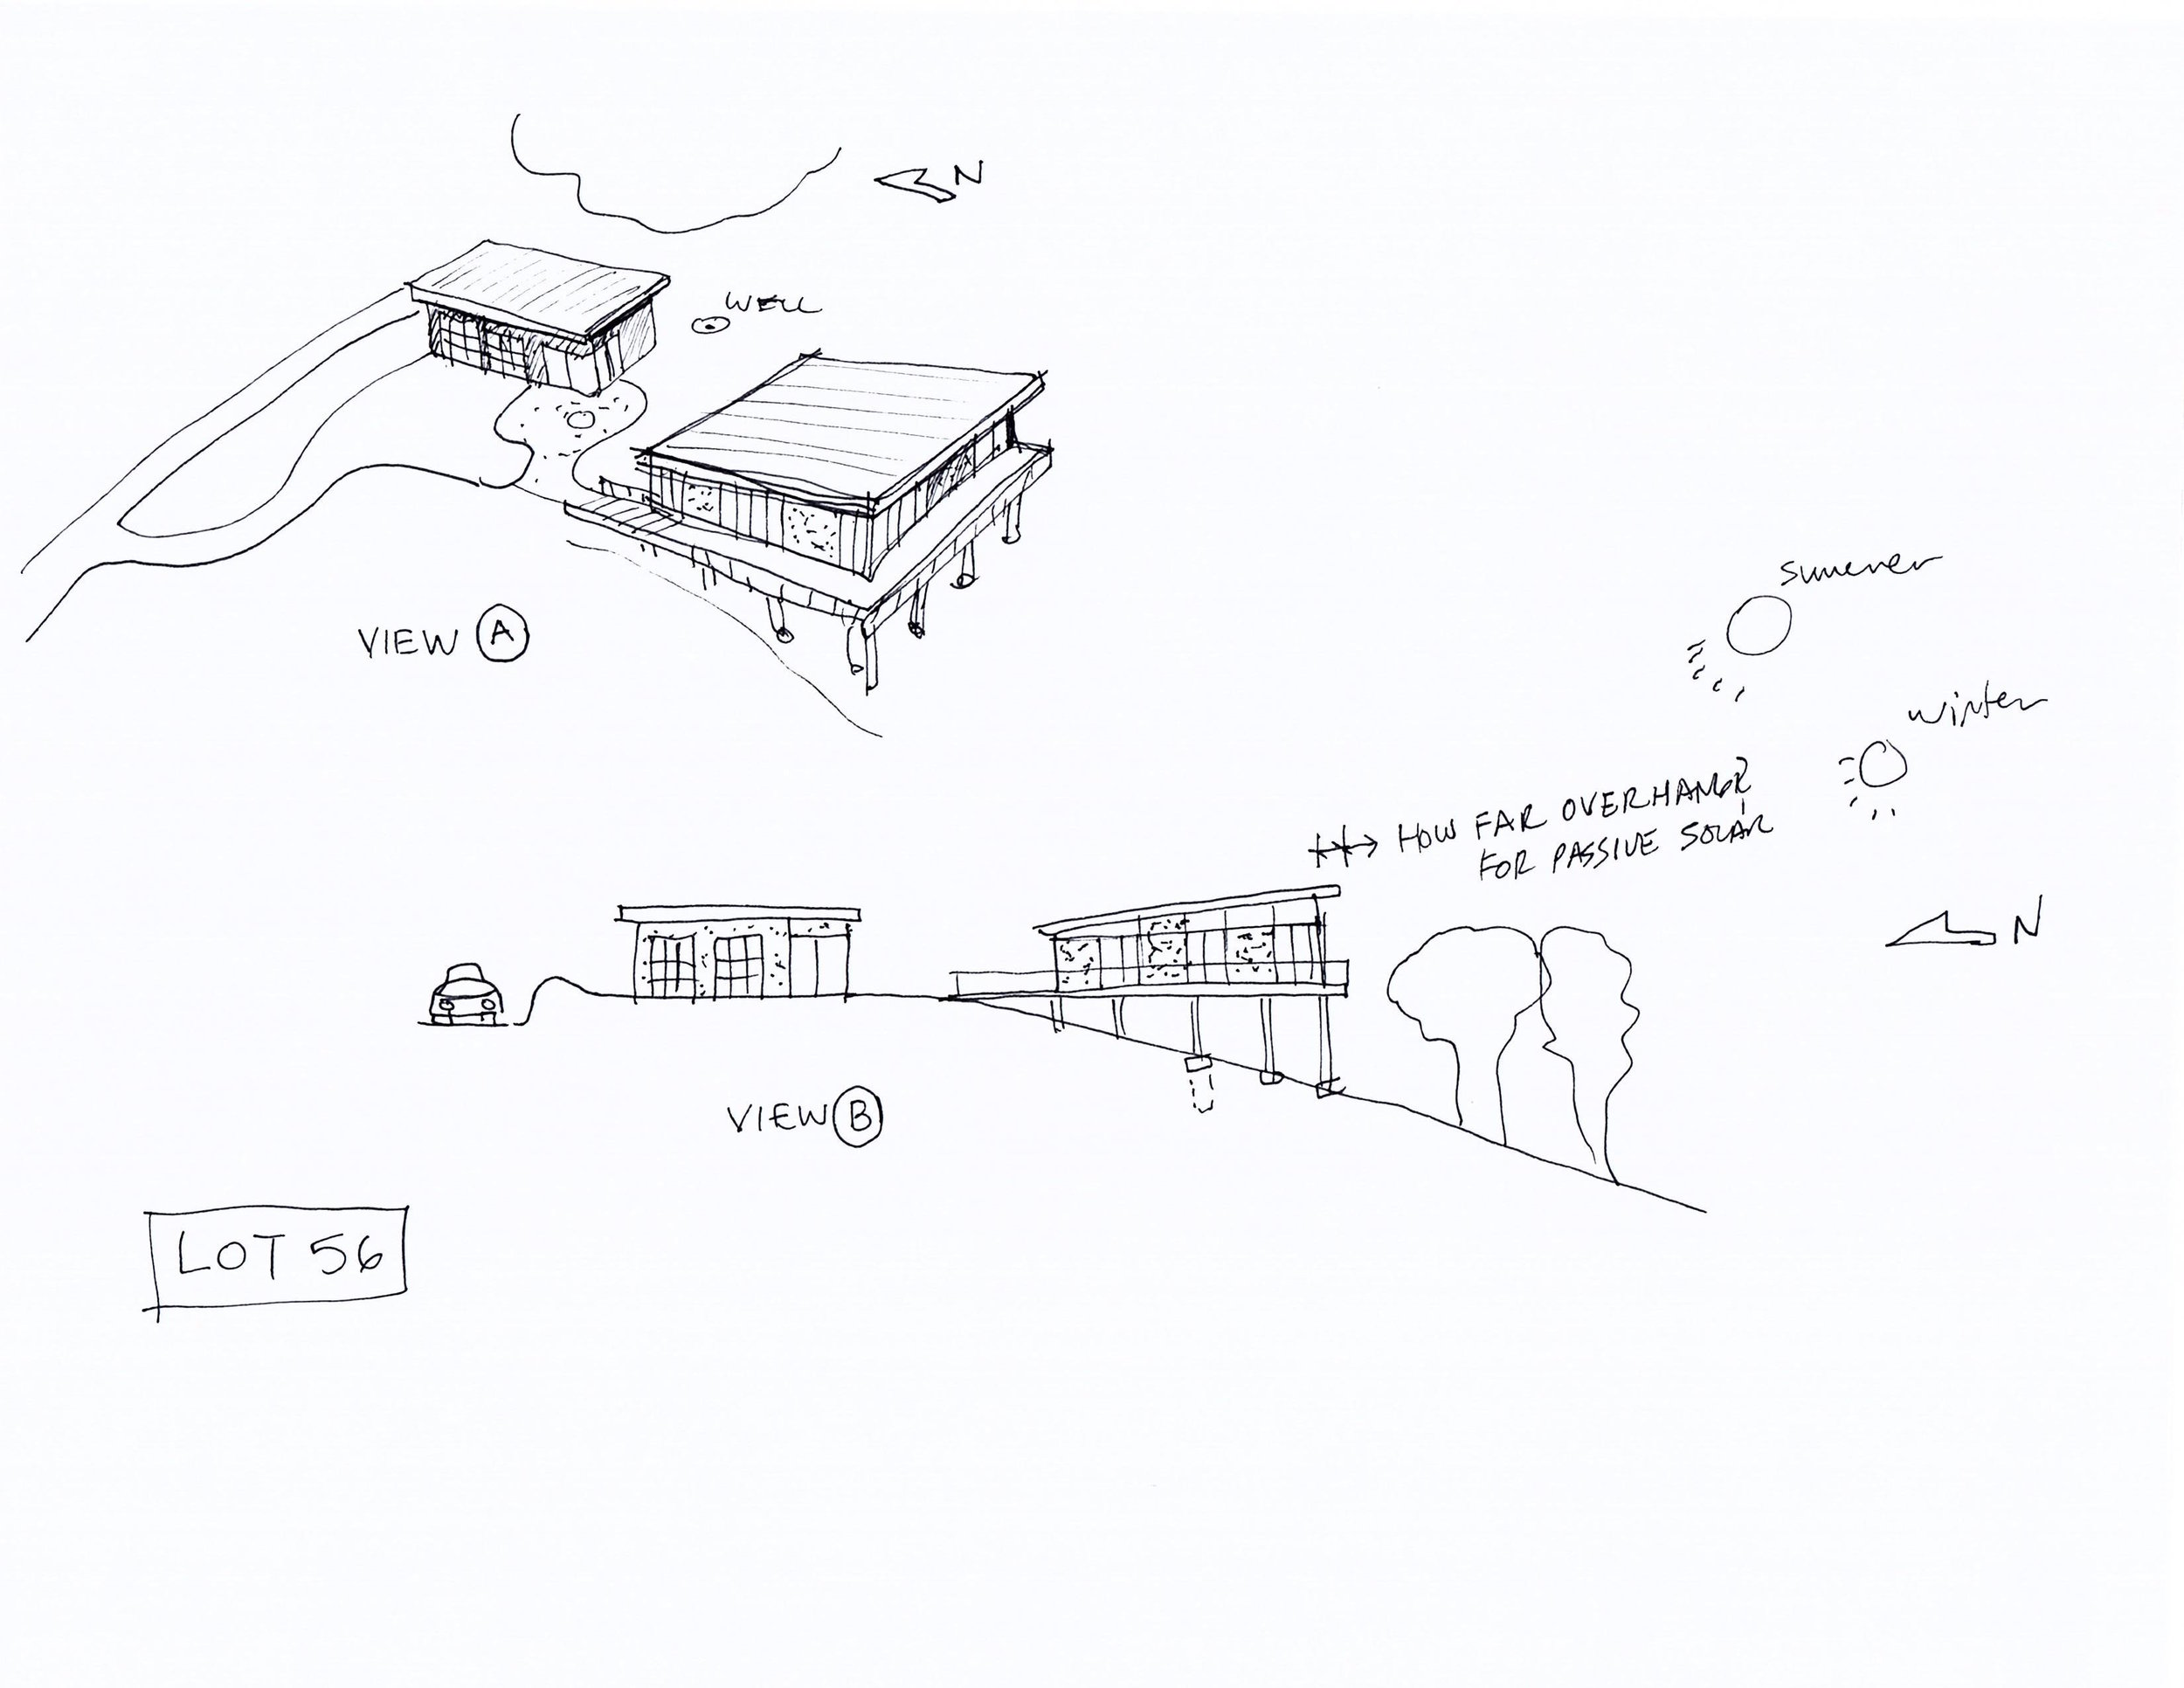 Sketches we made and reviewed with the Monterey County planners before purchasing the lot